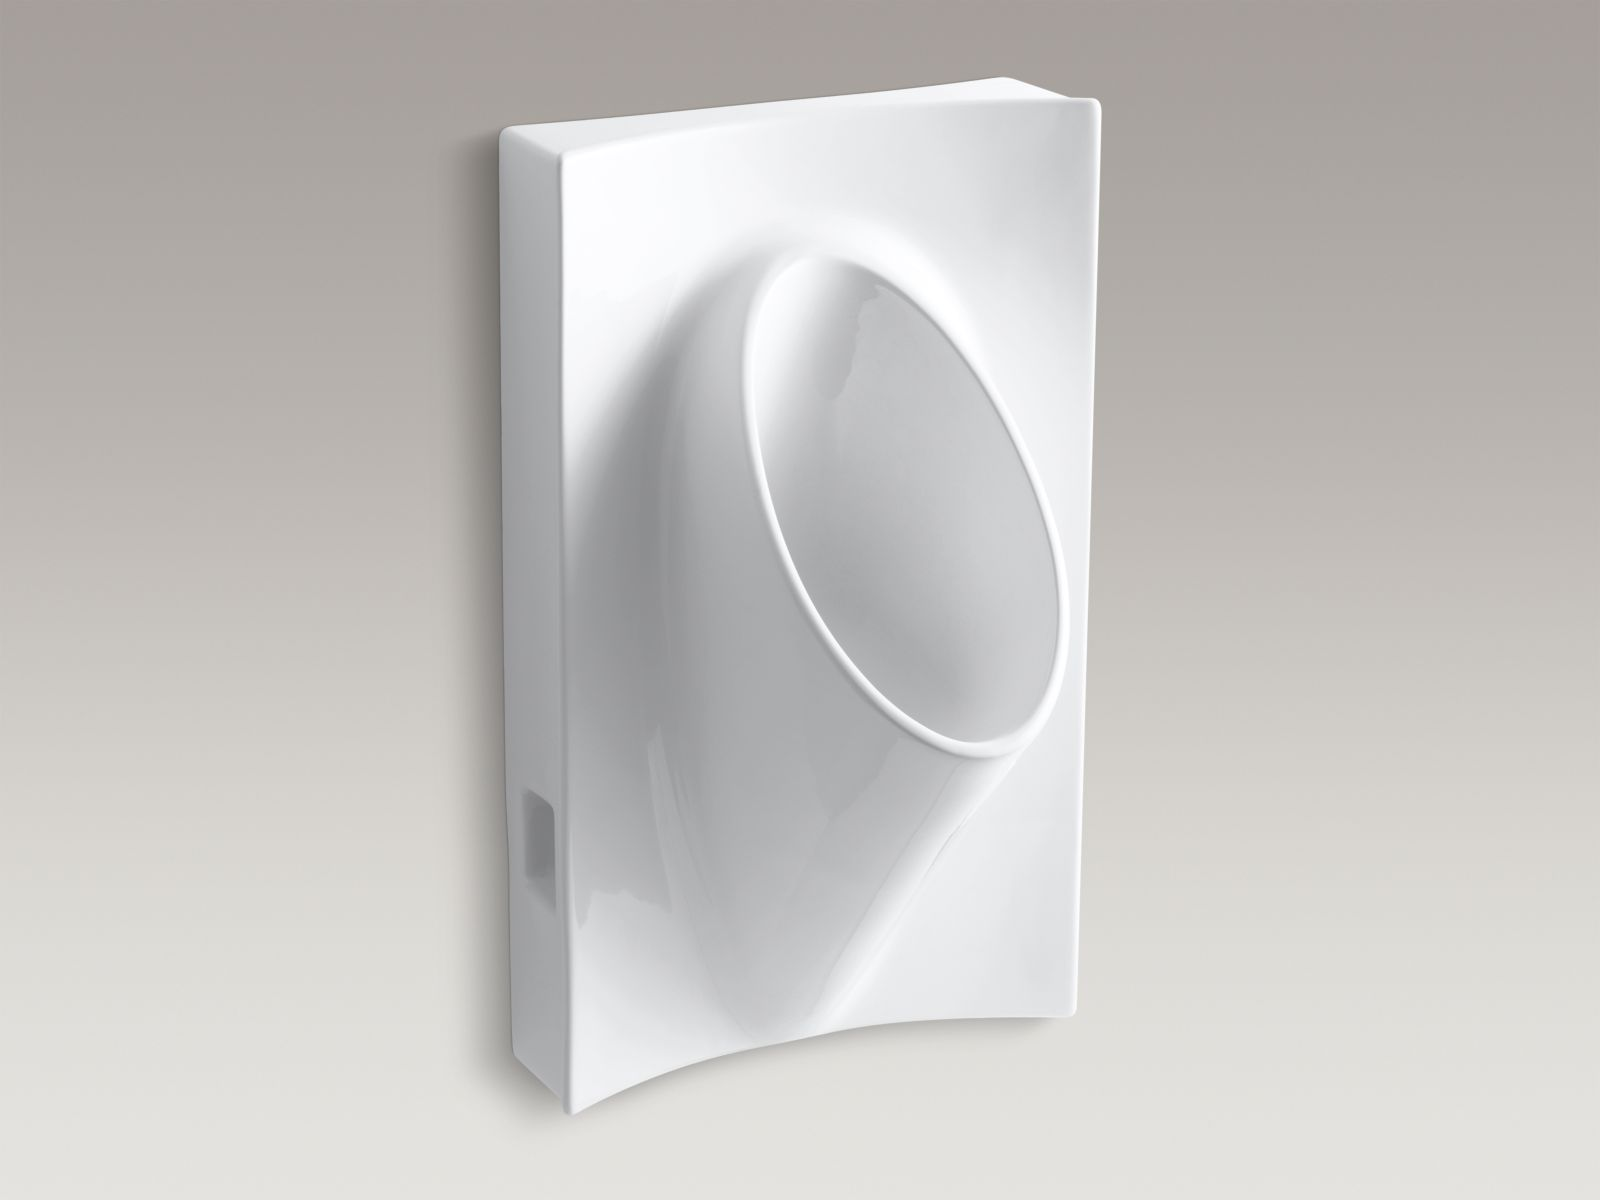 "Kohler K-4919-0 Steward Waterless 20"" x 32"" x 16"" Wall-mounted Urinal White"